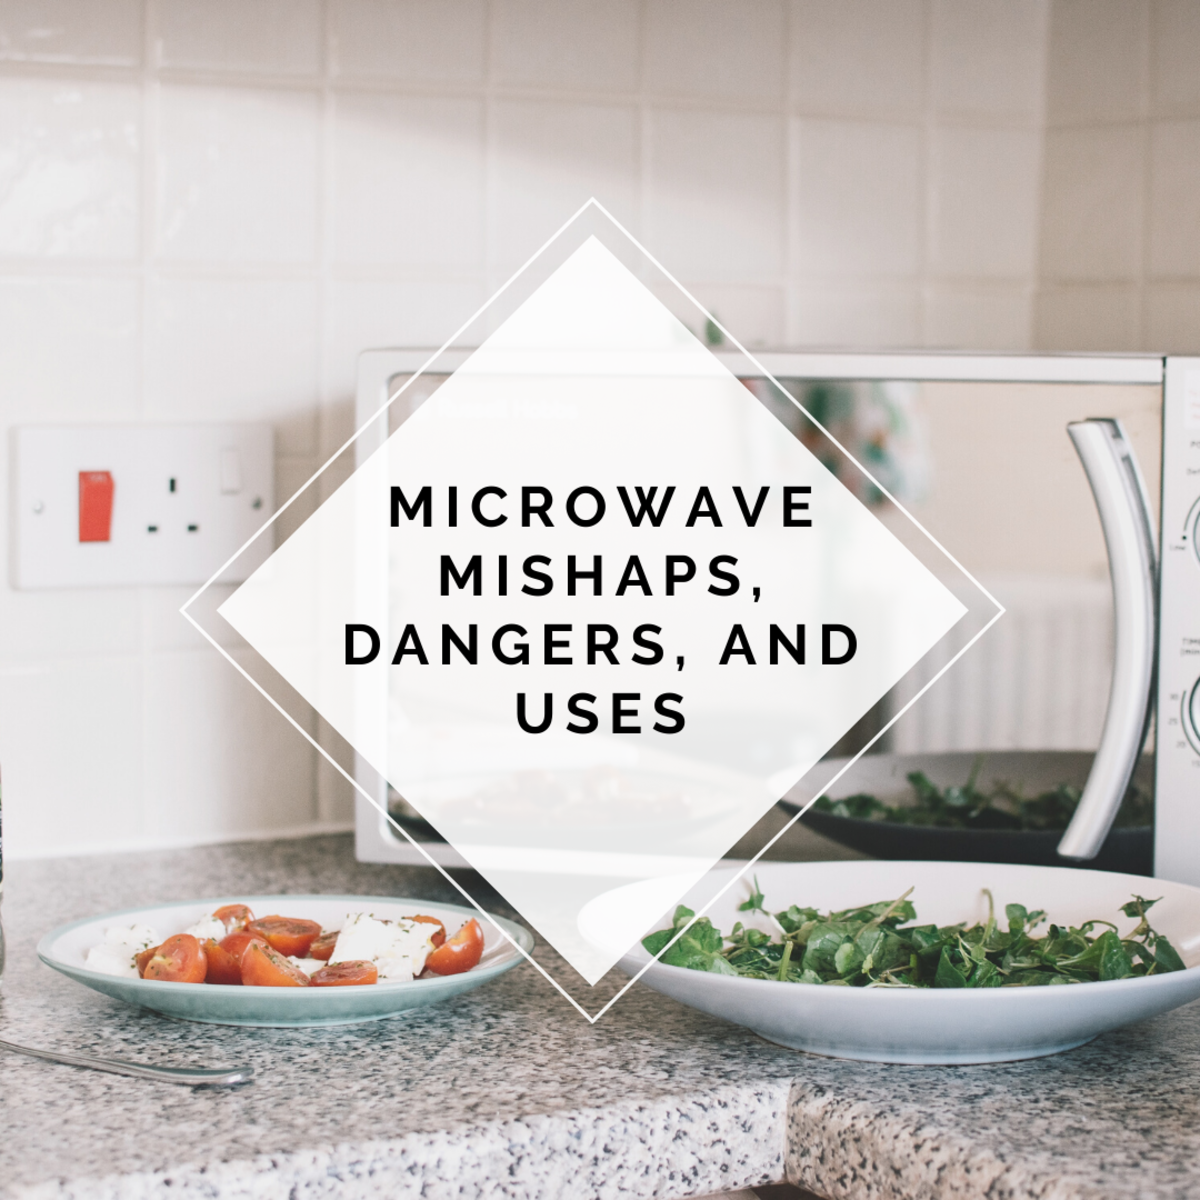 Microwave Mishaps, Dangers, and Uses